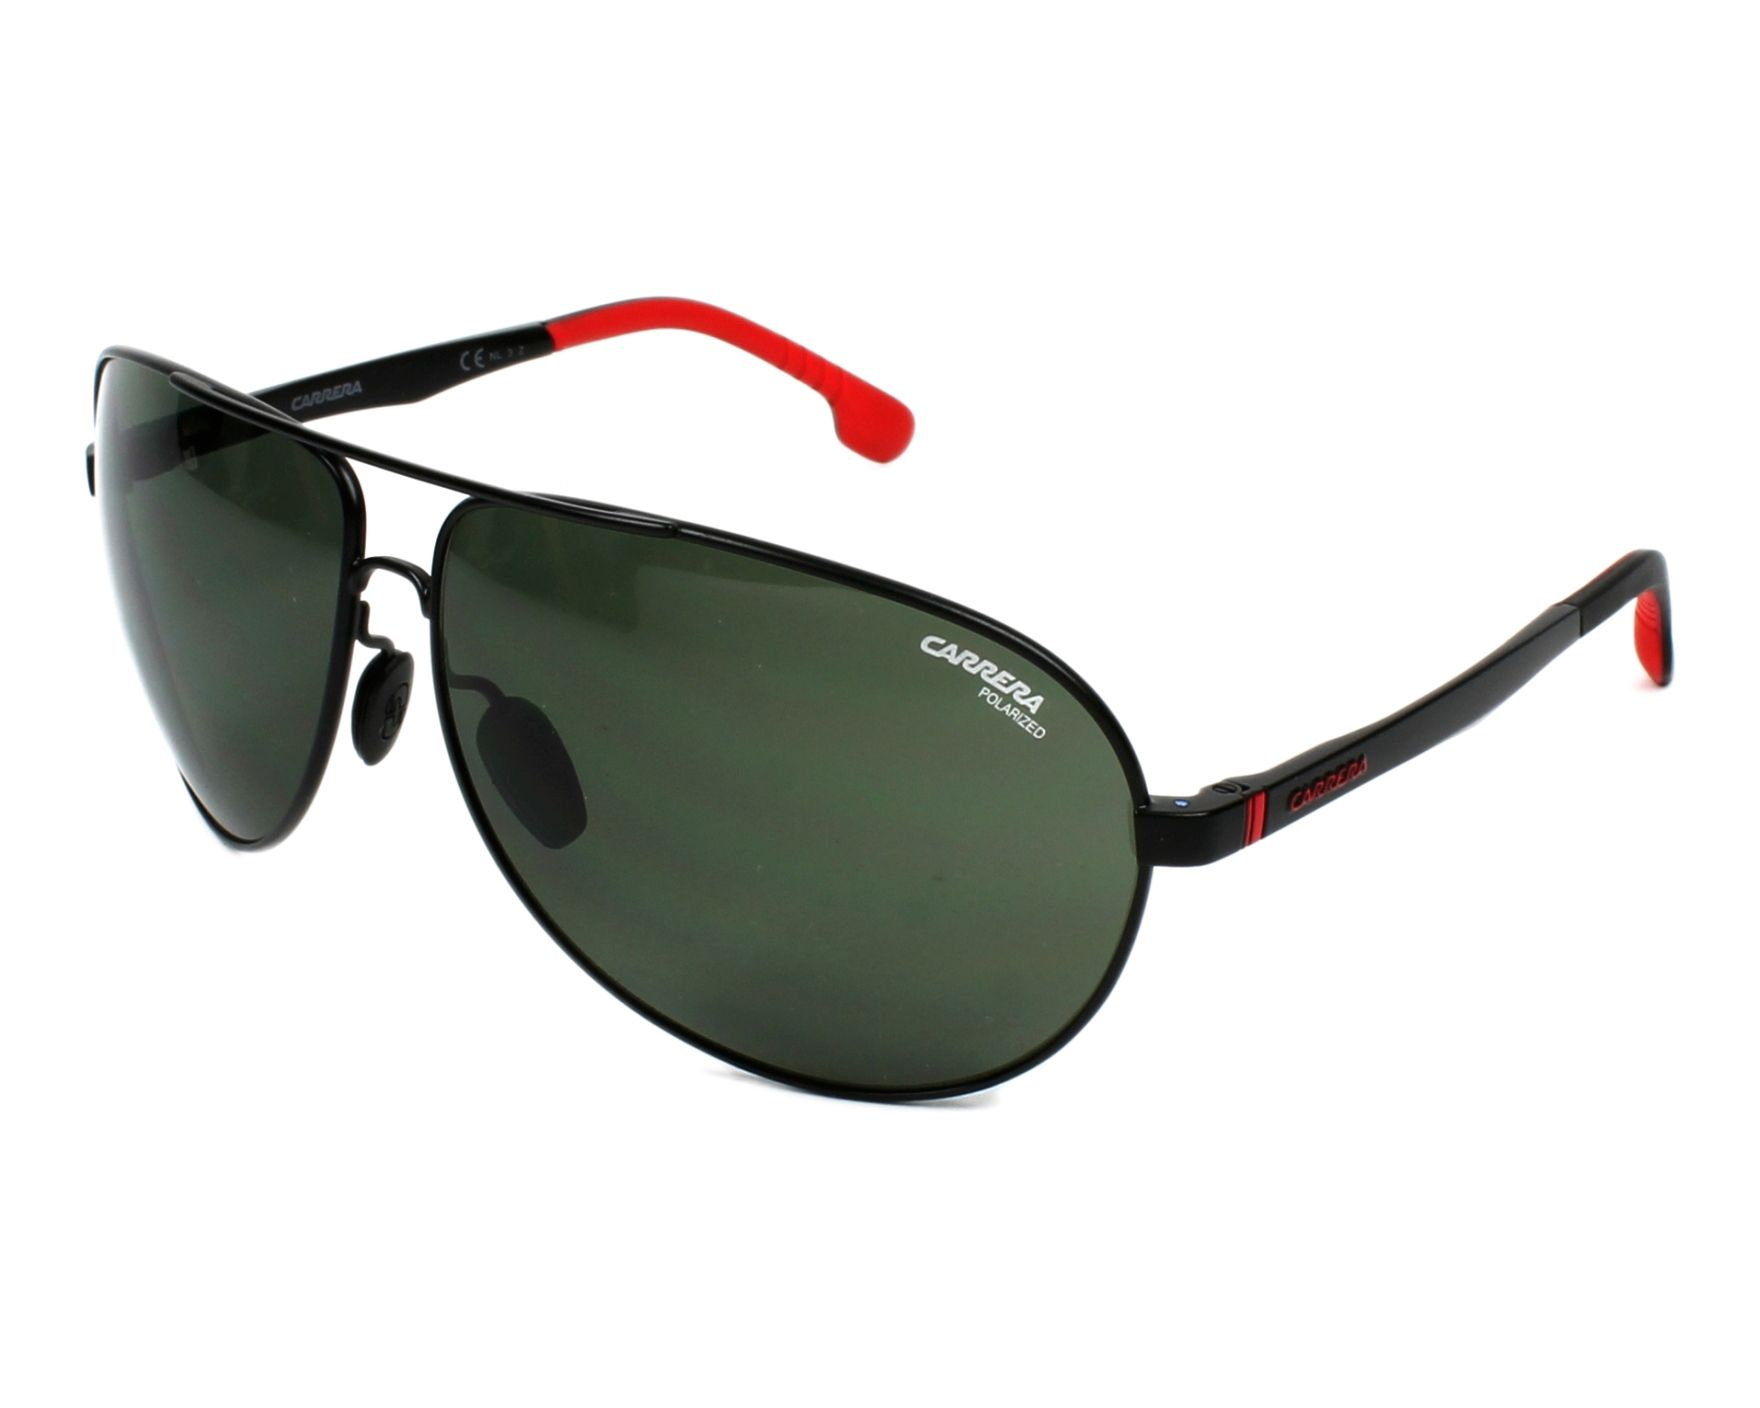 Carrera 8023/S 003/UC 65 matte black / green polarized jD8I17Kdl